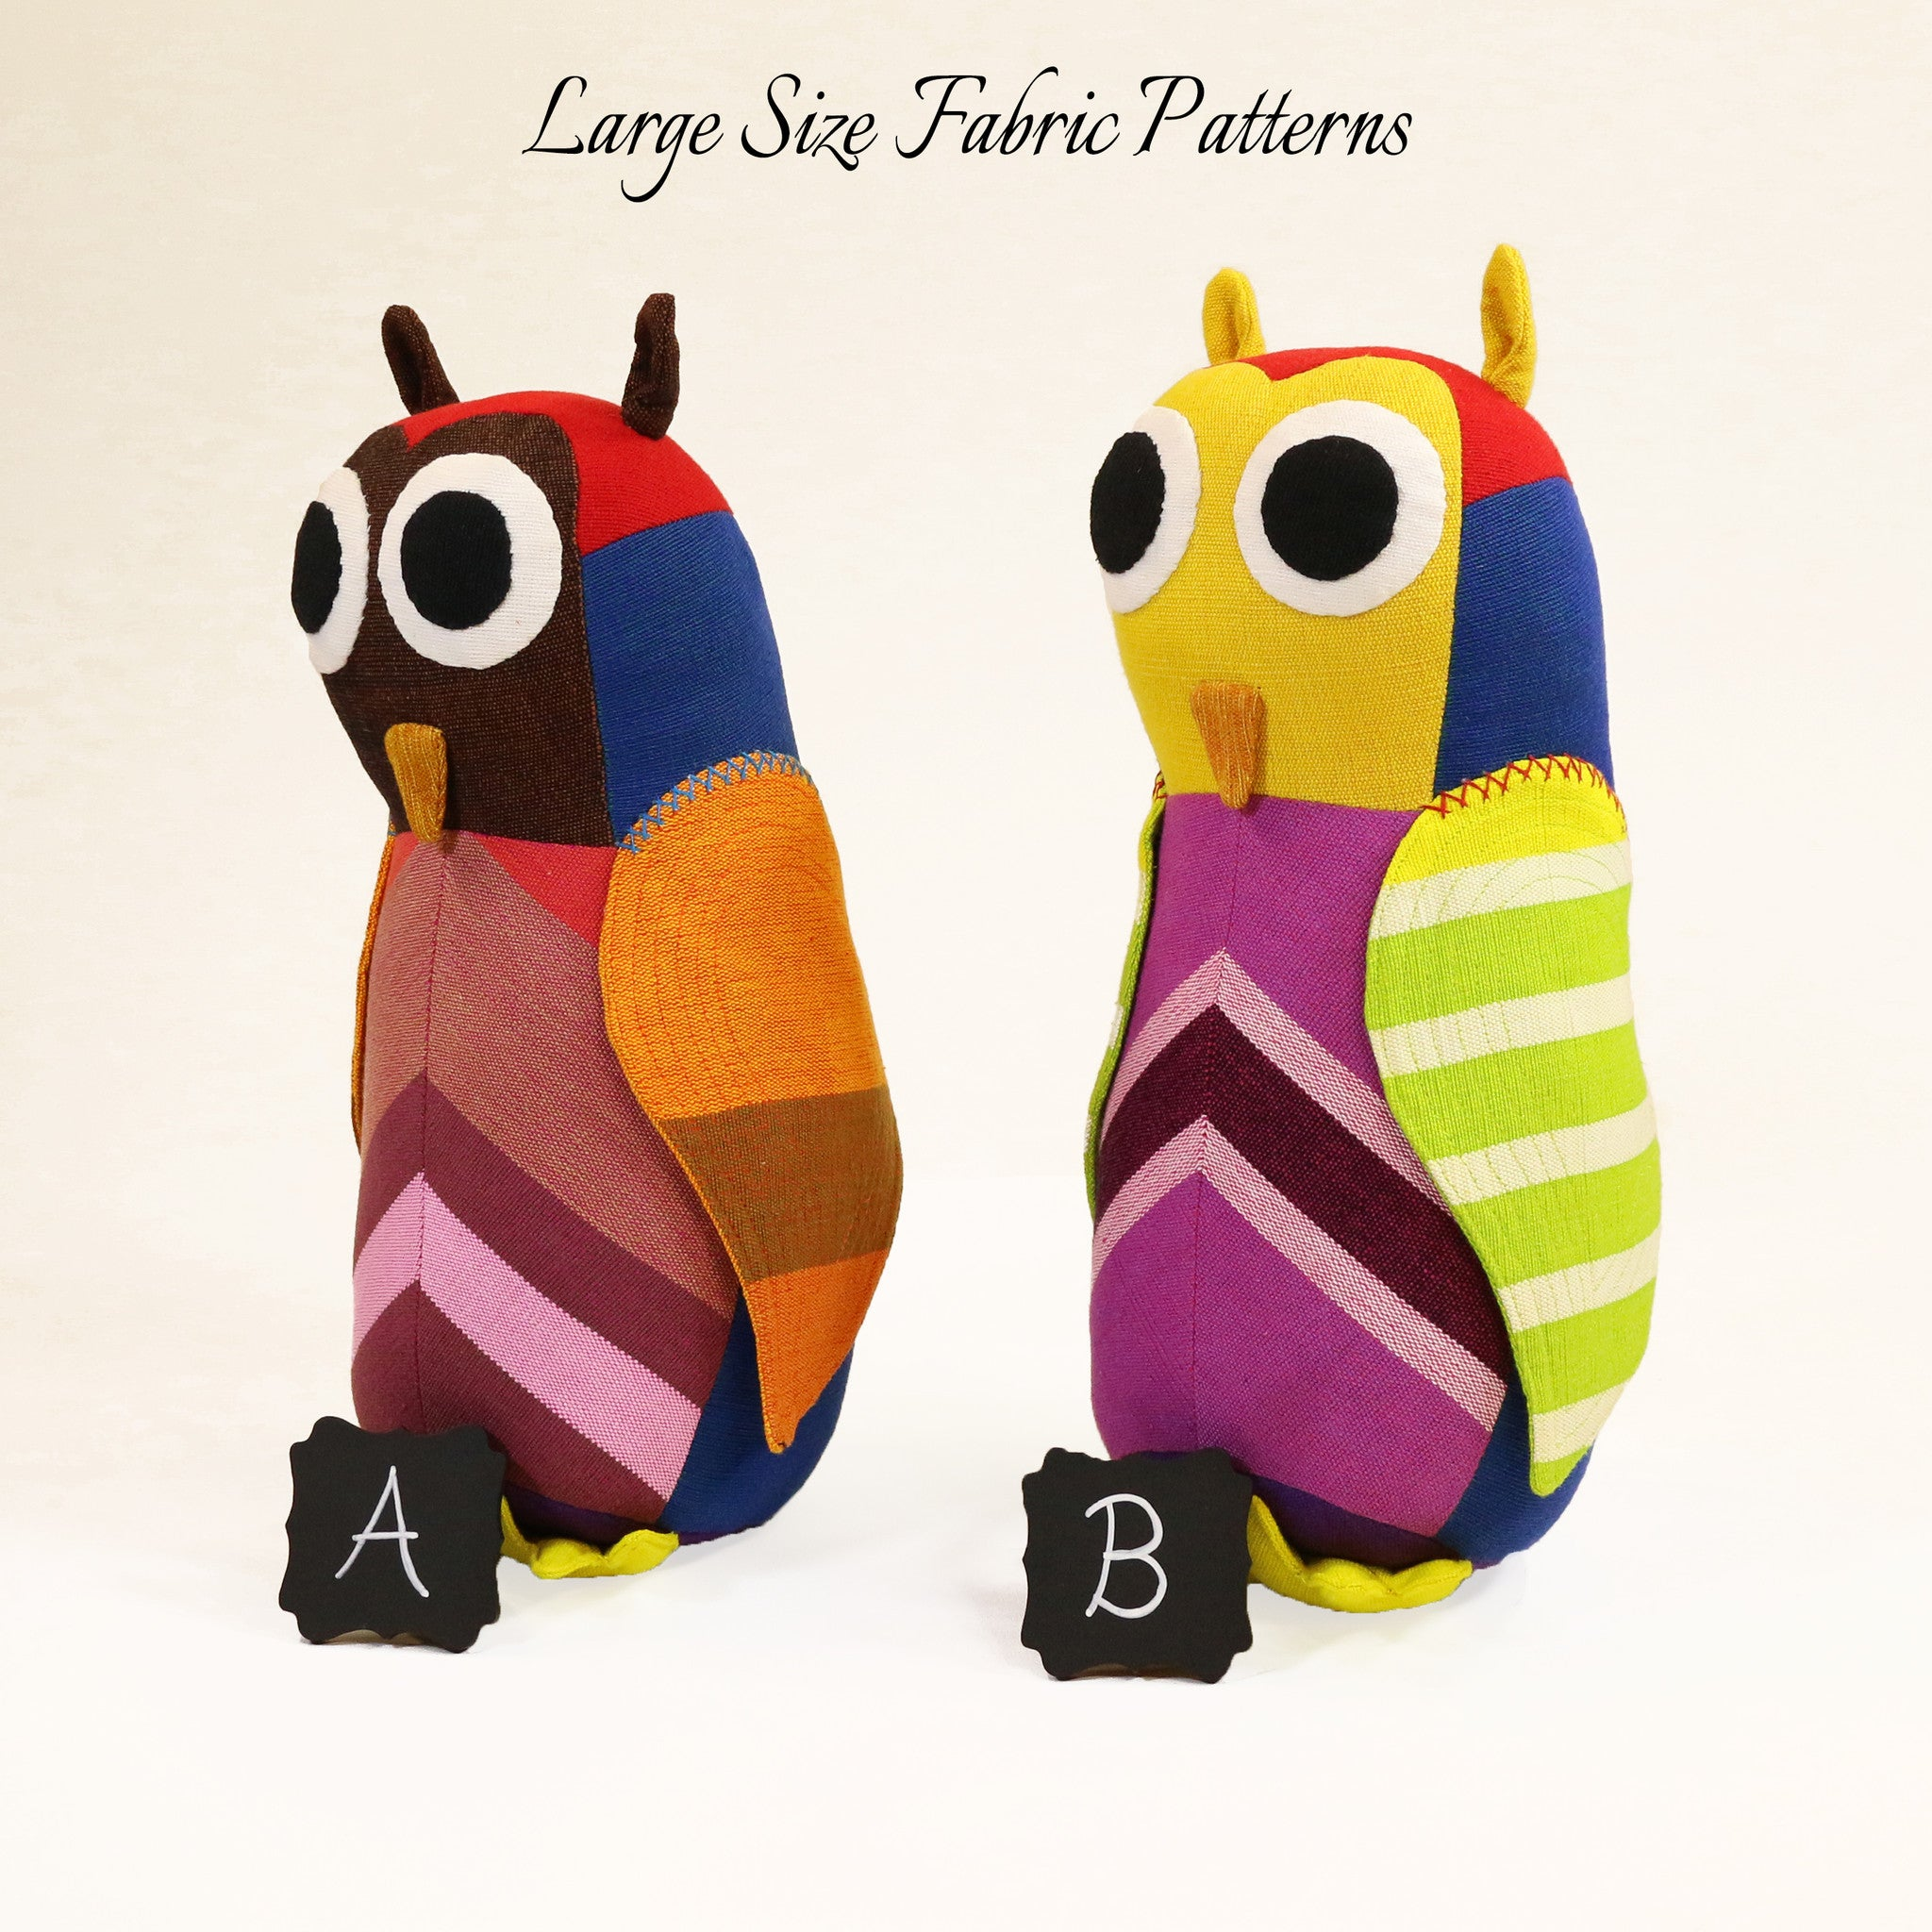 Hazel, the Owl – all large size fabric patterns shown